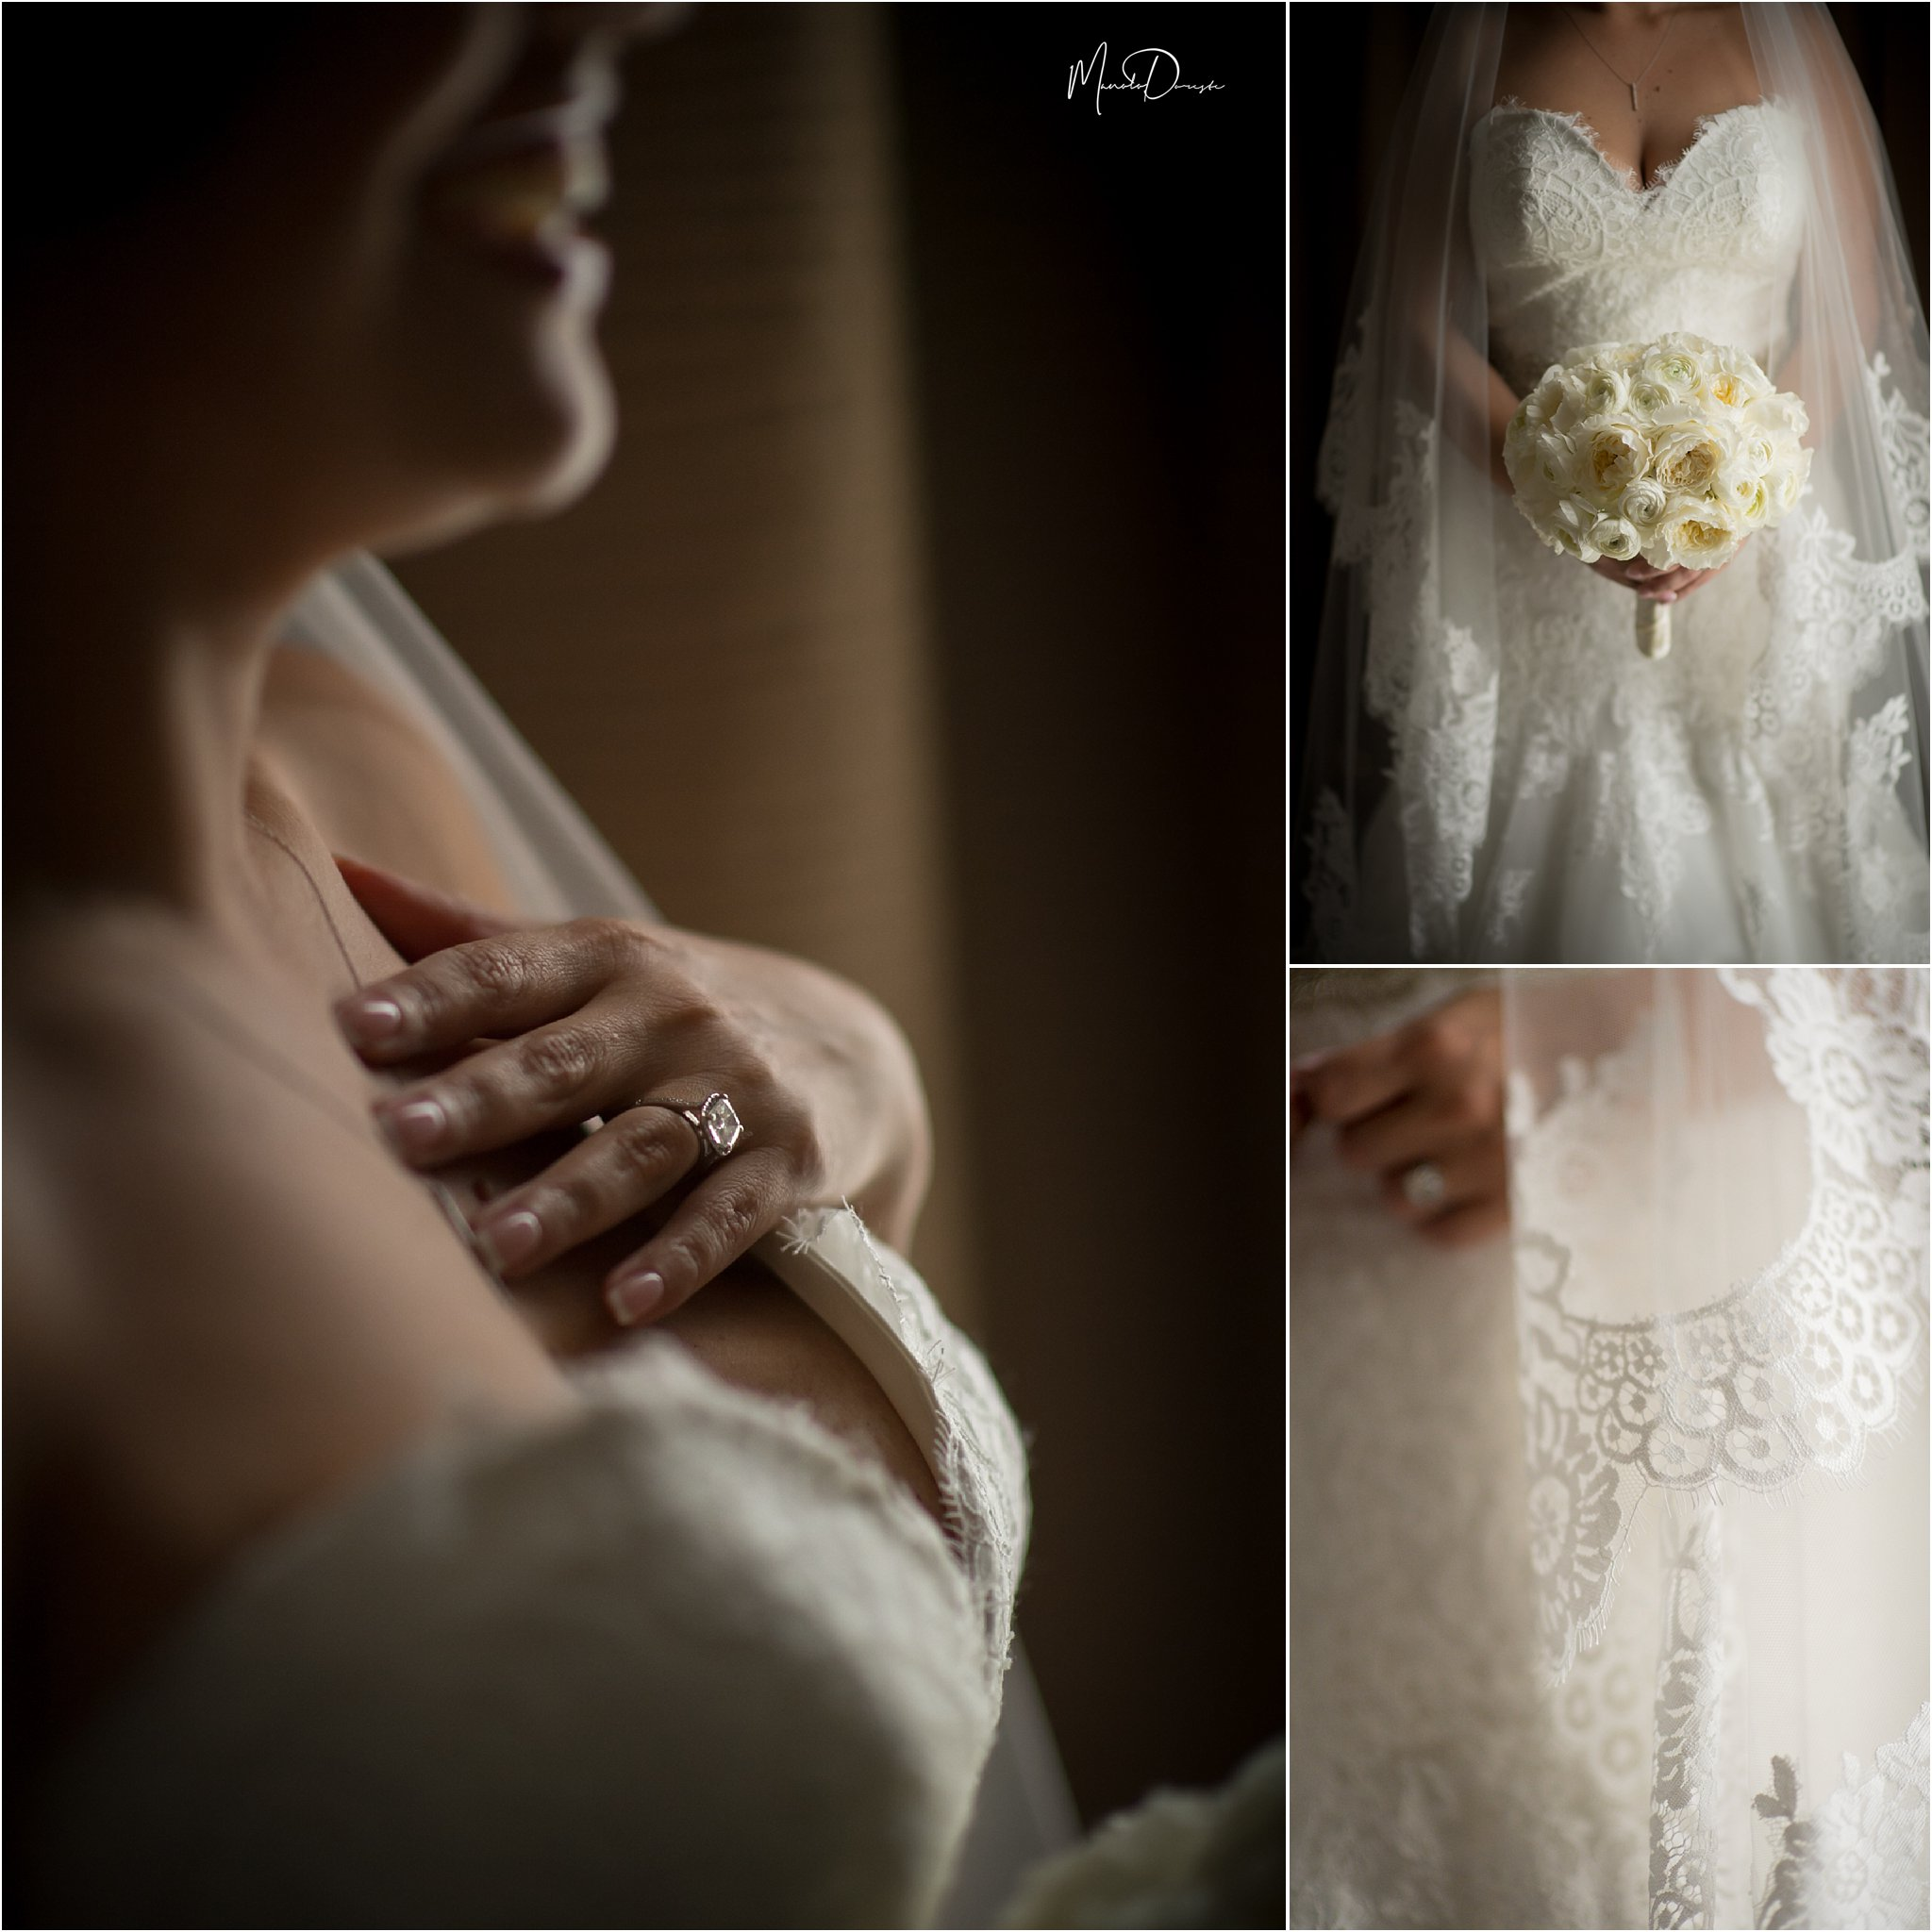 0082_ManoloDoreste_InFocusStudios_Wedding_Family_Photography_Miami_MiamiPhotographer.jpg